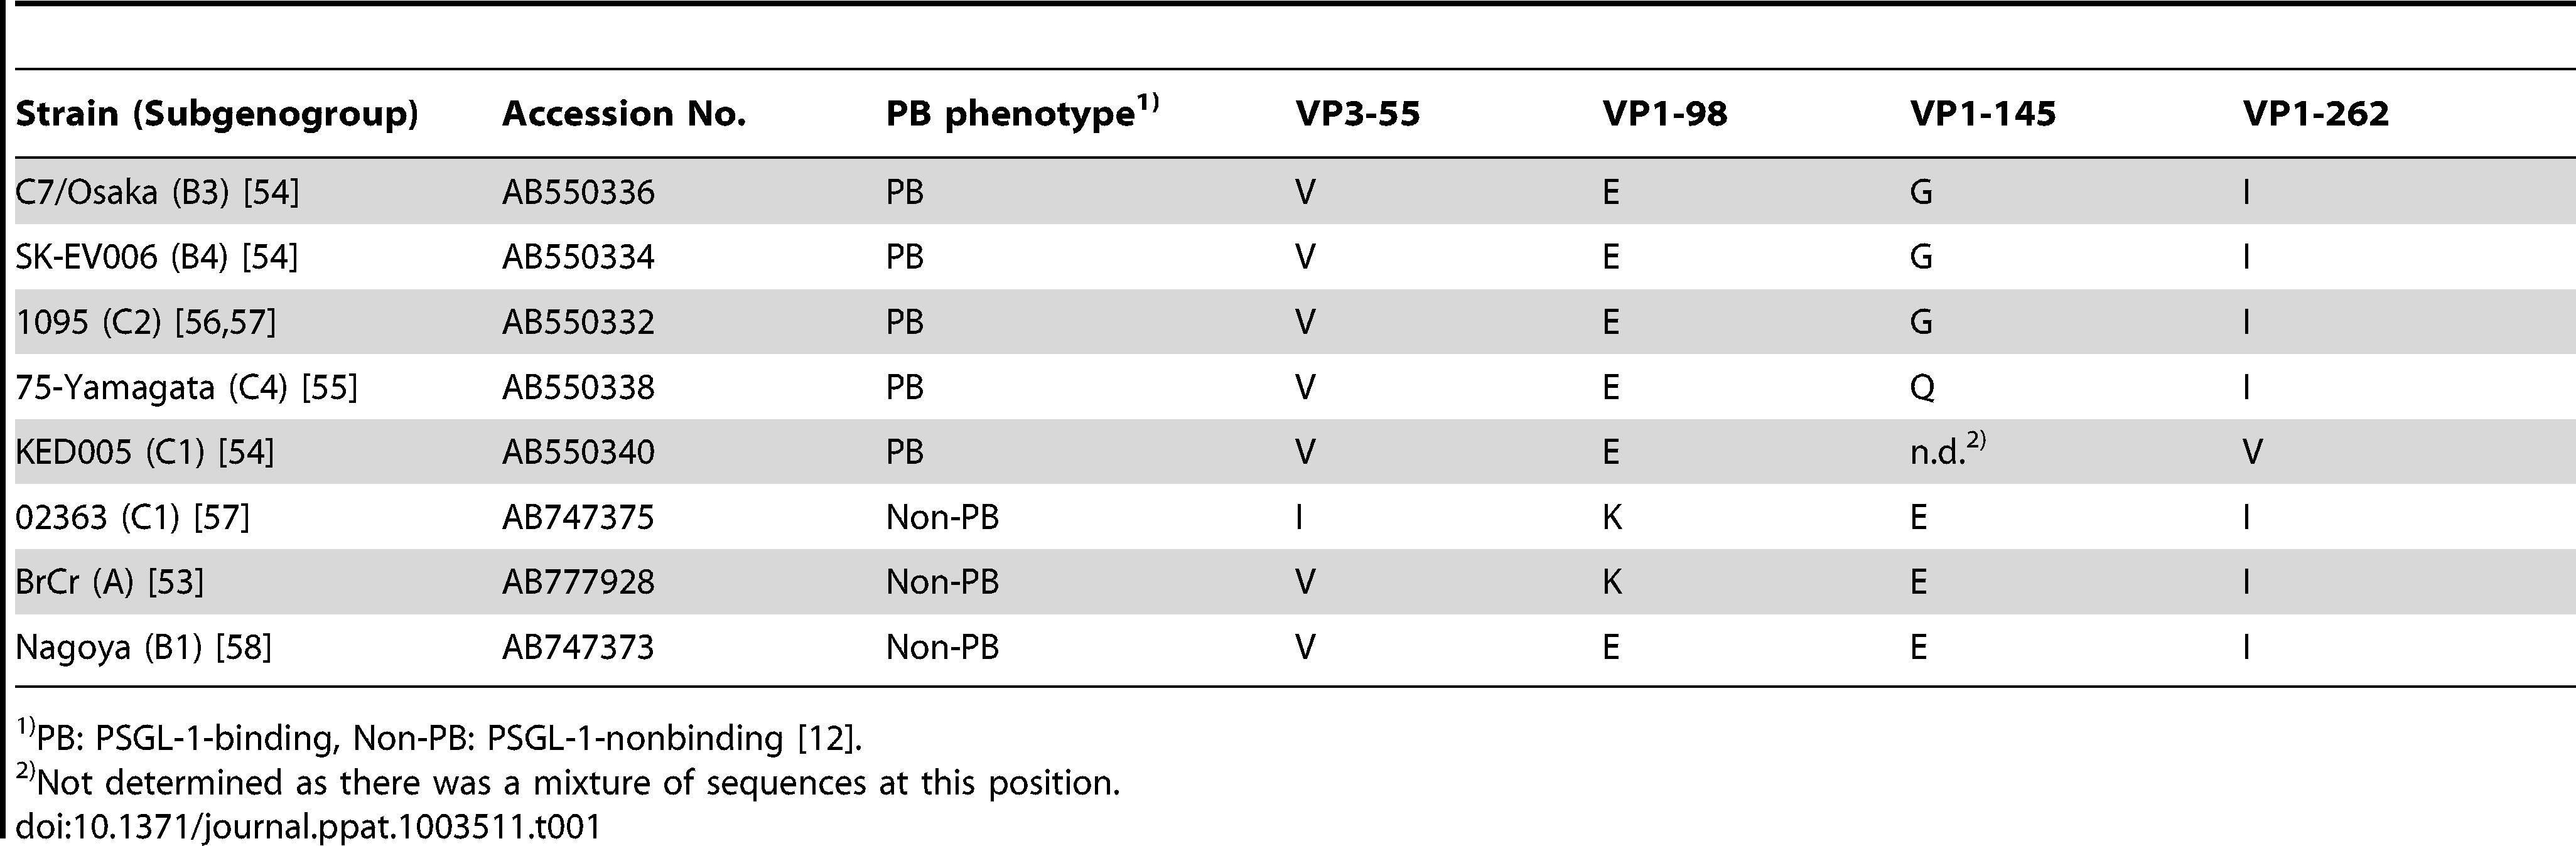 Representation among EV71 isolates of the four amino acids found to differ between KED005 and 02363.